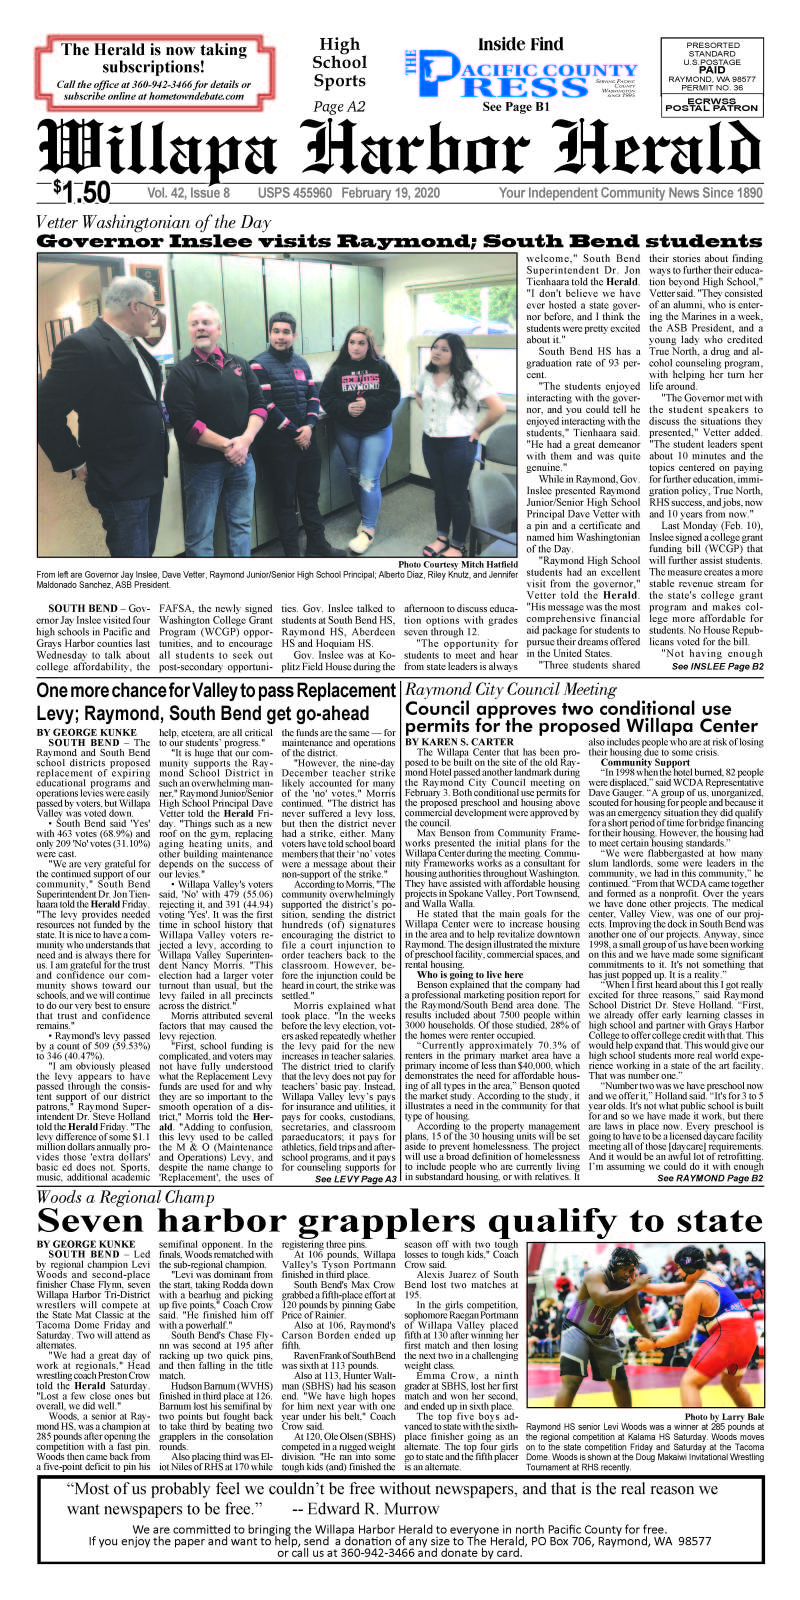 February 19, 2020 Willapa Harbor Herald and Pacific County Press